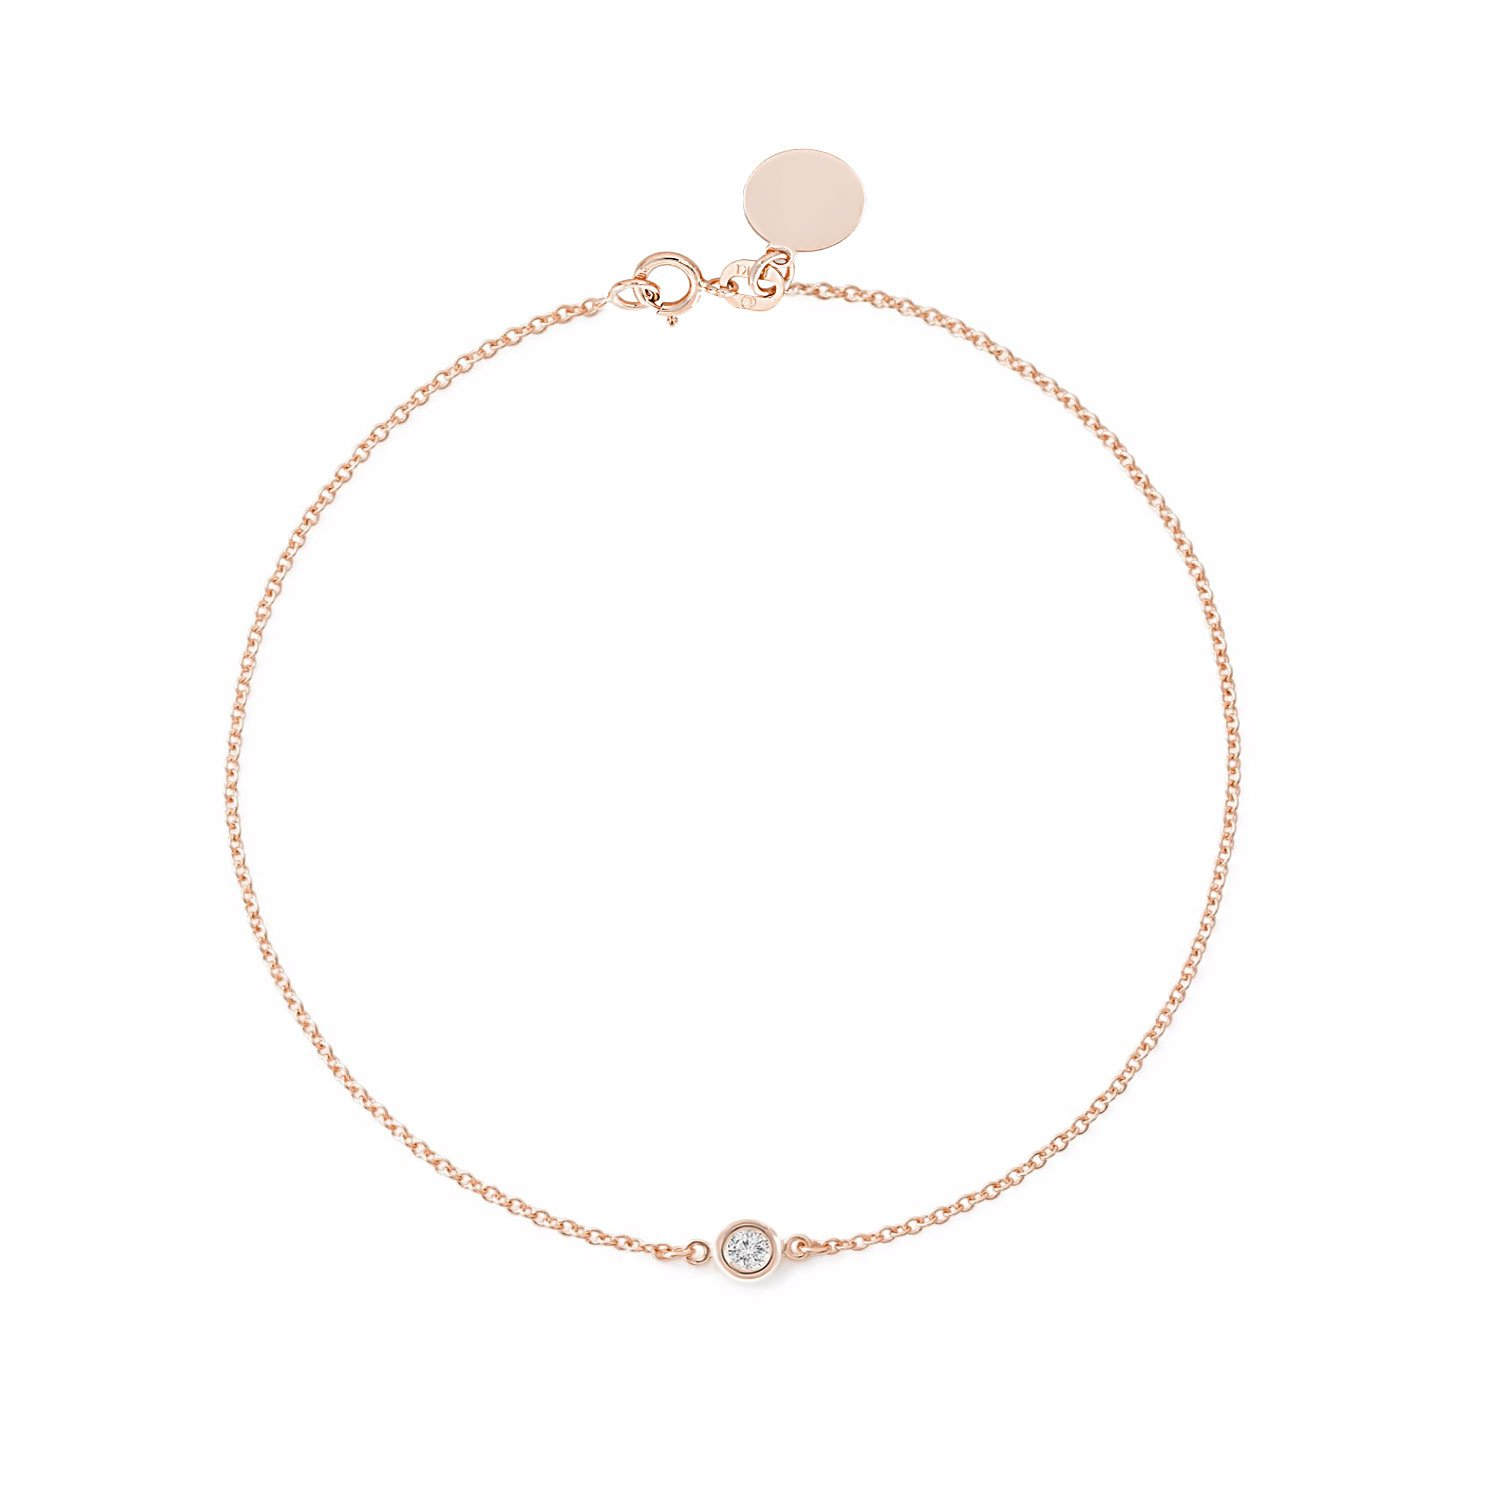 Solitaire Diamond Bracelet - Solid Yellow White Rose Gold -14K or 18Karat - Dainty and Simple Bezel Set - Free Engraving - Graceful Gift for Women (0.10 CT Diamond SIZE 7.5'' 18K Rose Gold)